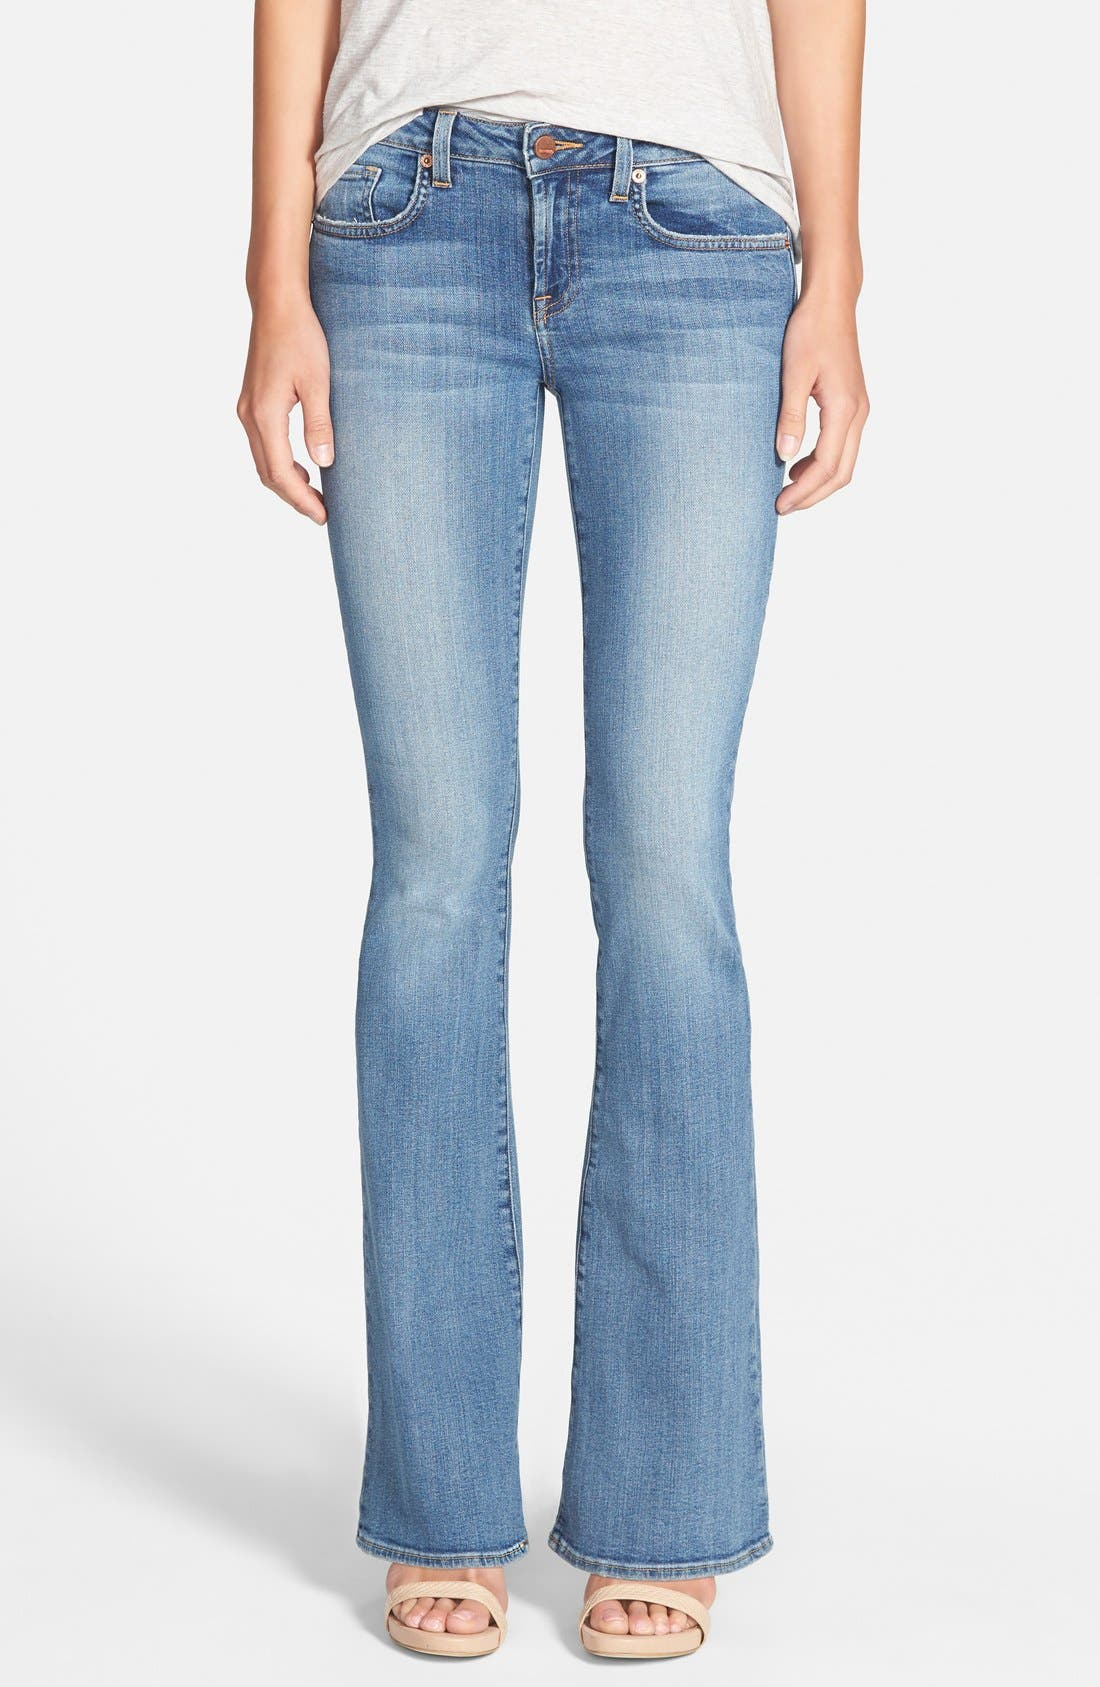 Alternate Image 1 Selected - Genetic 'Leaf' Low Rise Flare Jeans (Canyon)